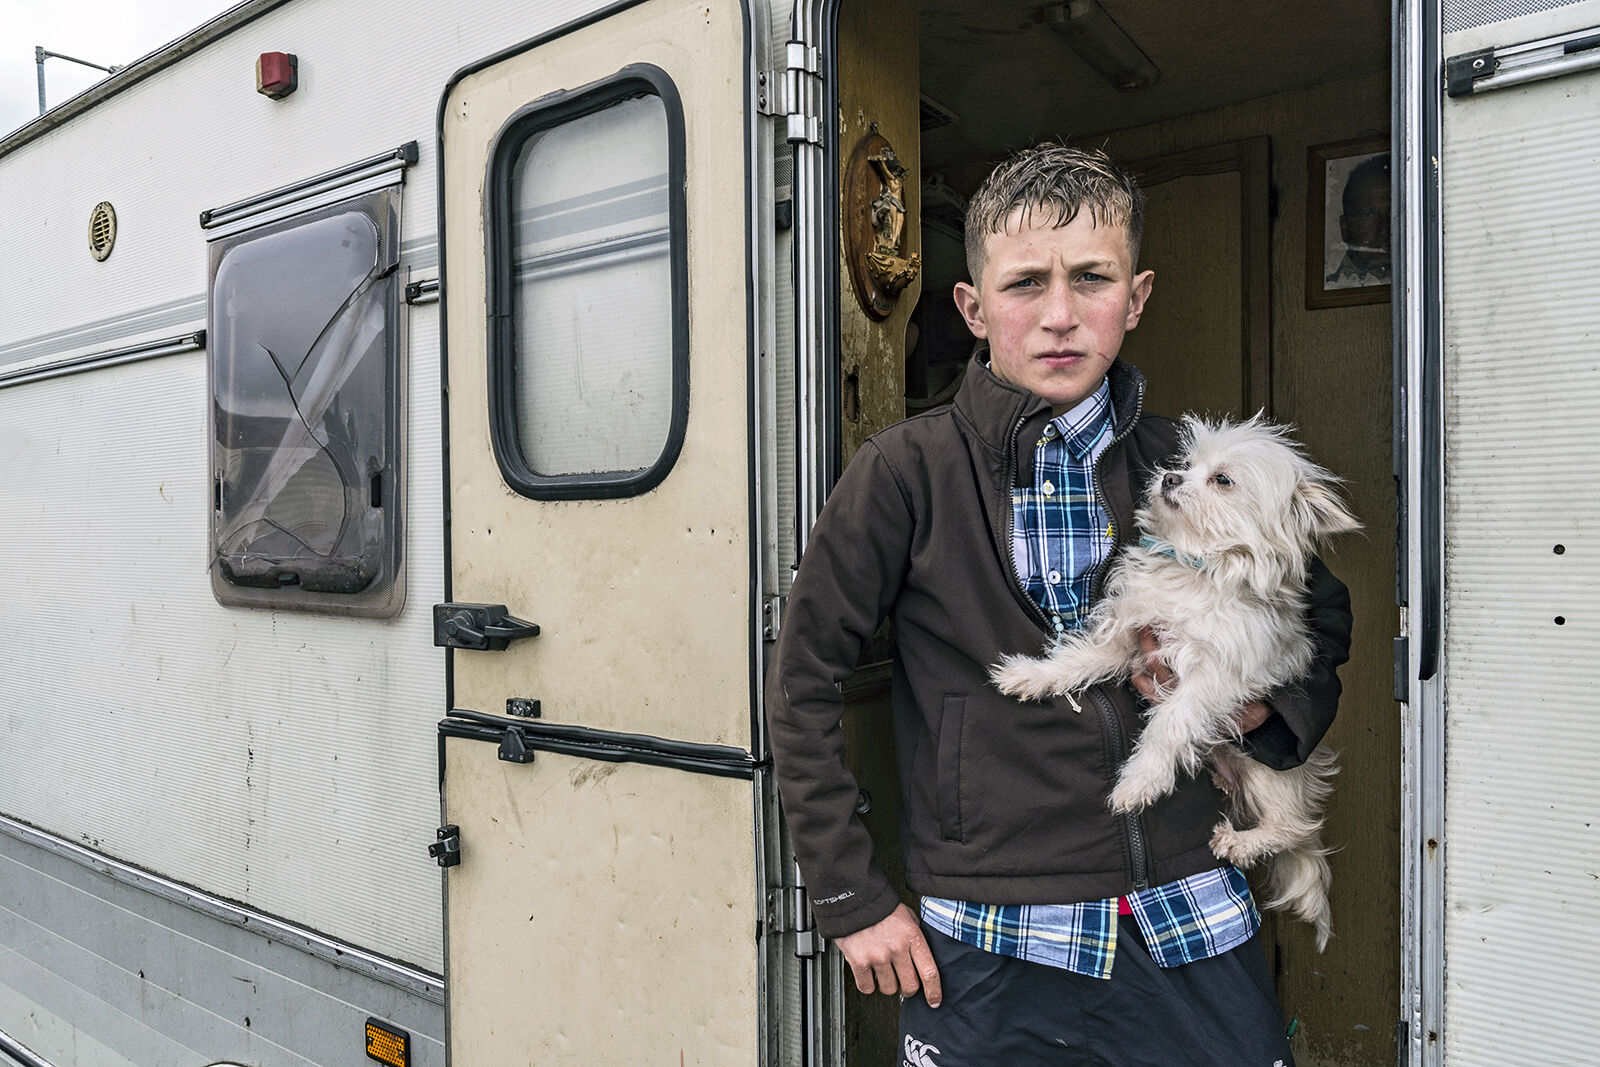 Willy With Dog, Tipperary, Ireland 2019